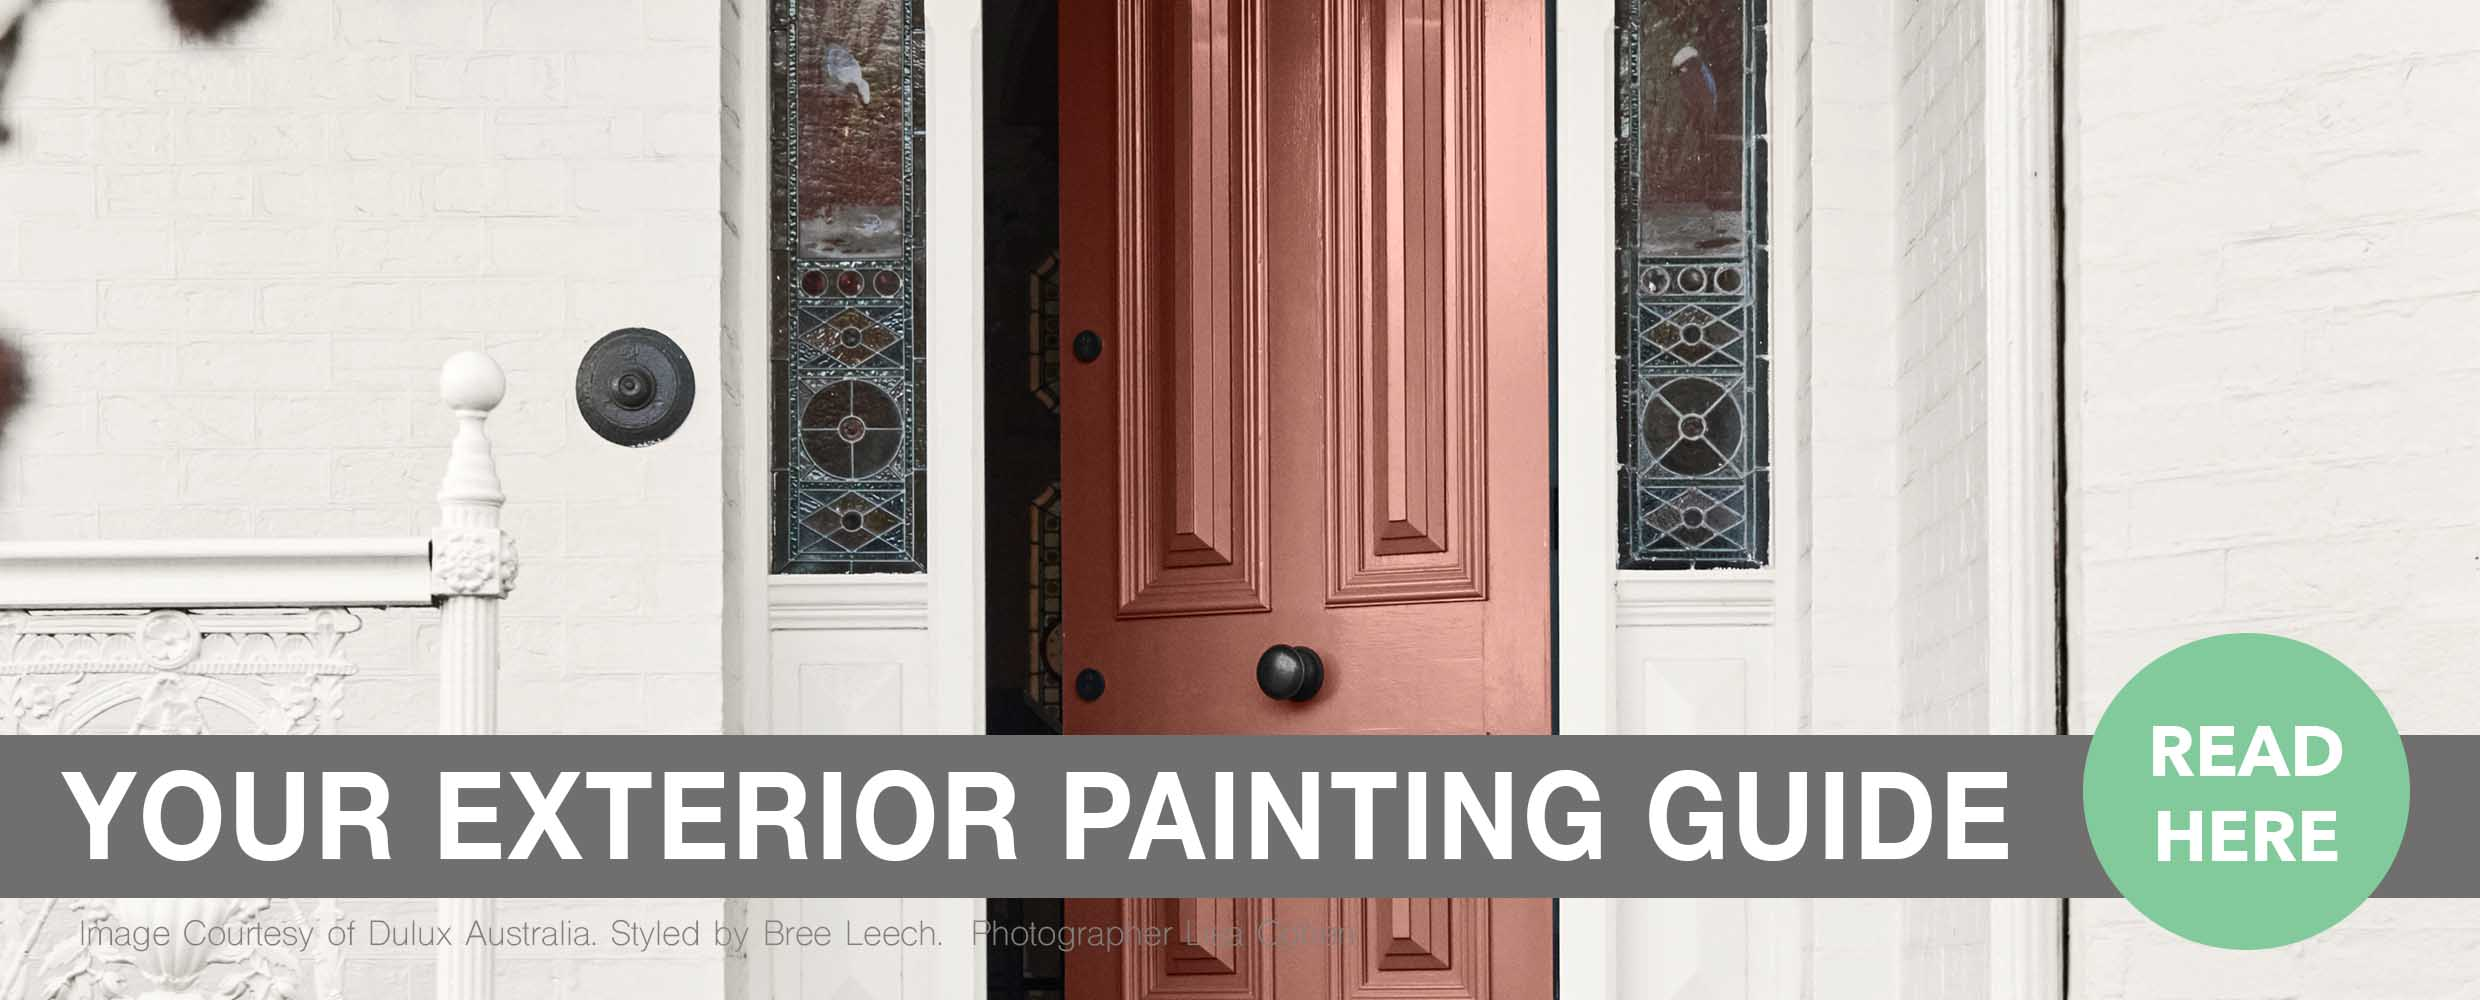 Home-Exterior-Painting-Guide - QUICK-YOUR-EXTERIOR-PAINTING-GUIDE